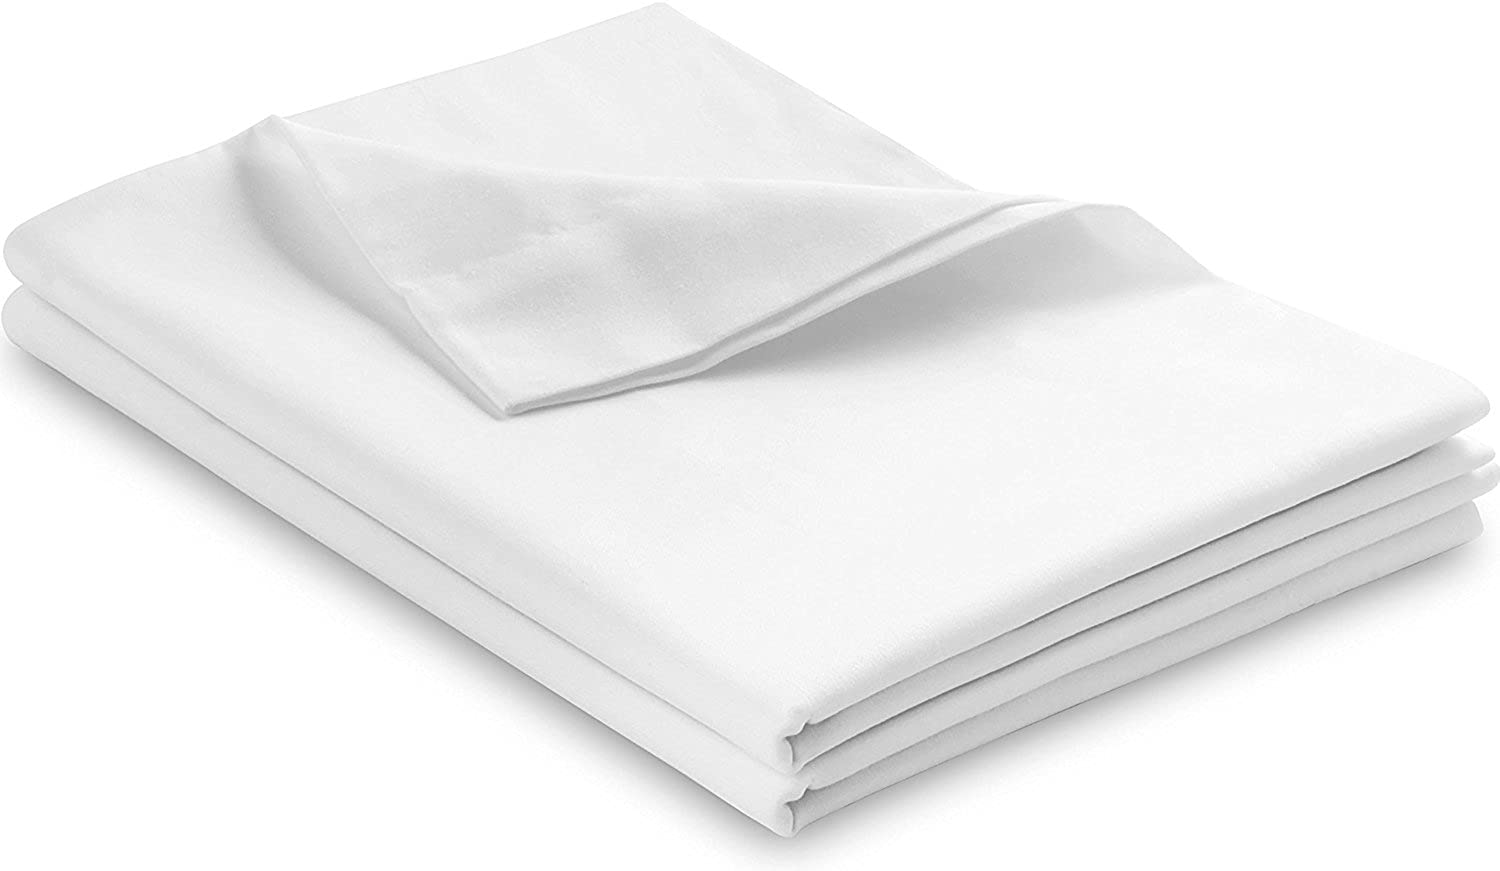 L'Cozee 100% Egyptian Cotton, 340 Thread Count, Pillow Cases - Pillow Cover, Pillow Predector Set of 2, Standard - Queen Size - 20 x 28, White color